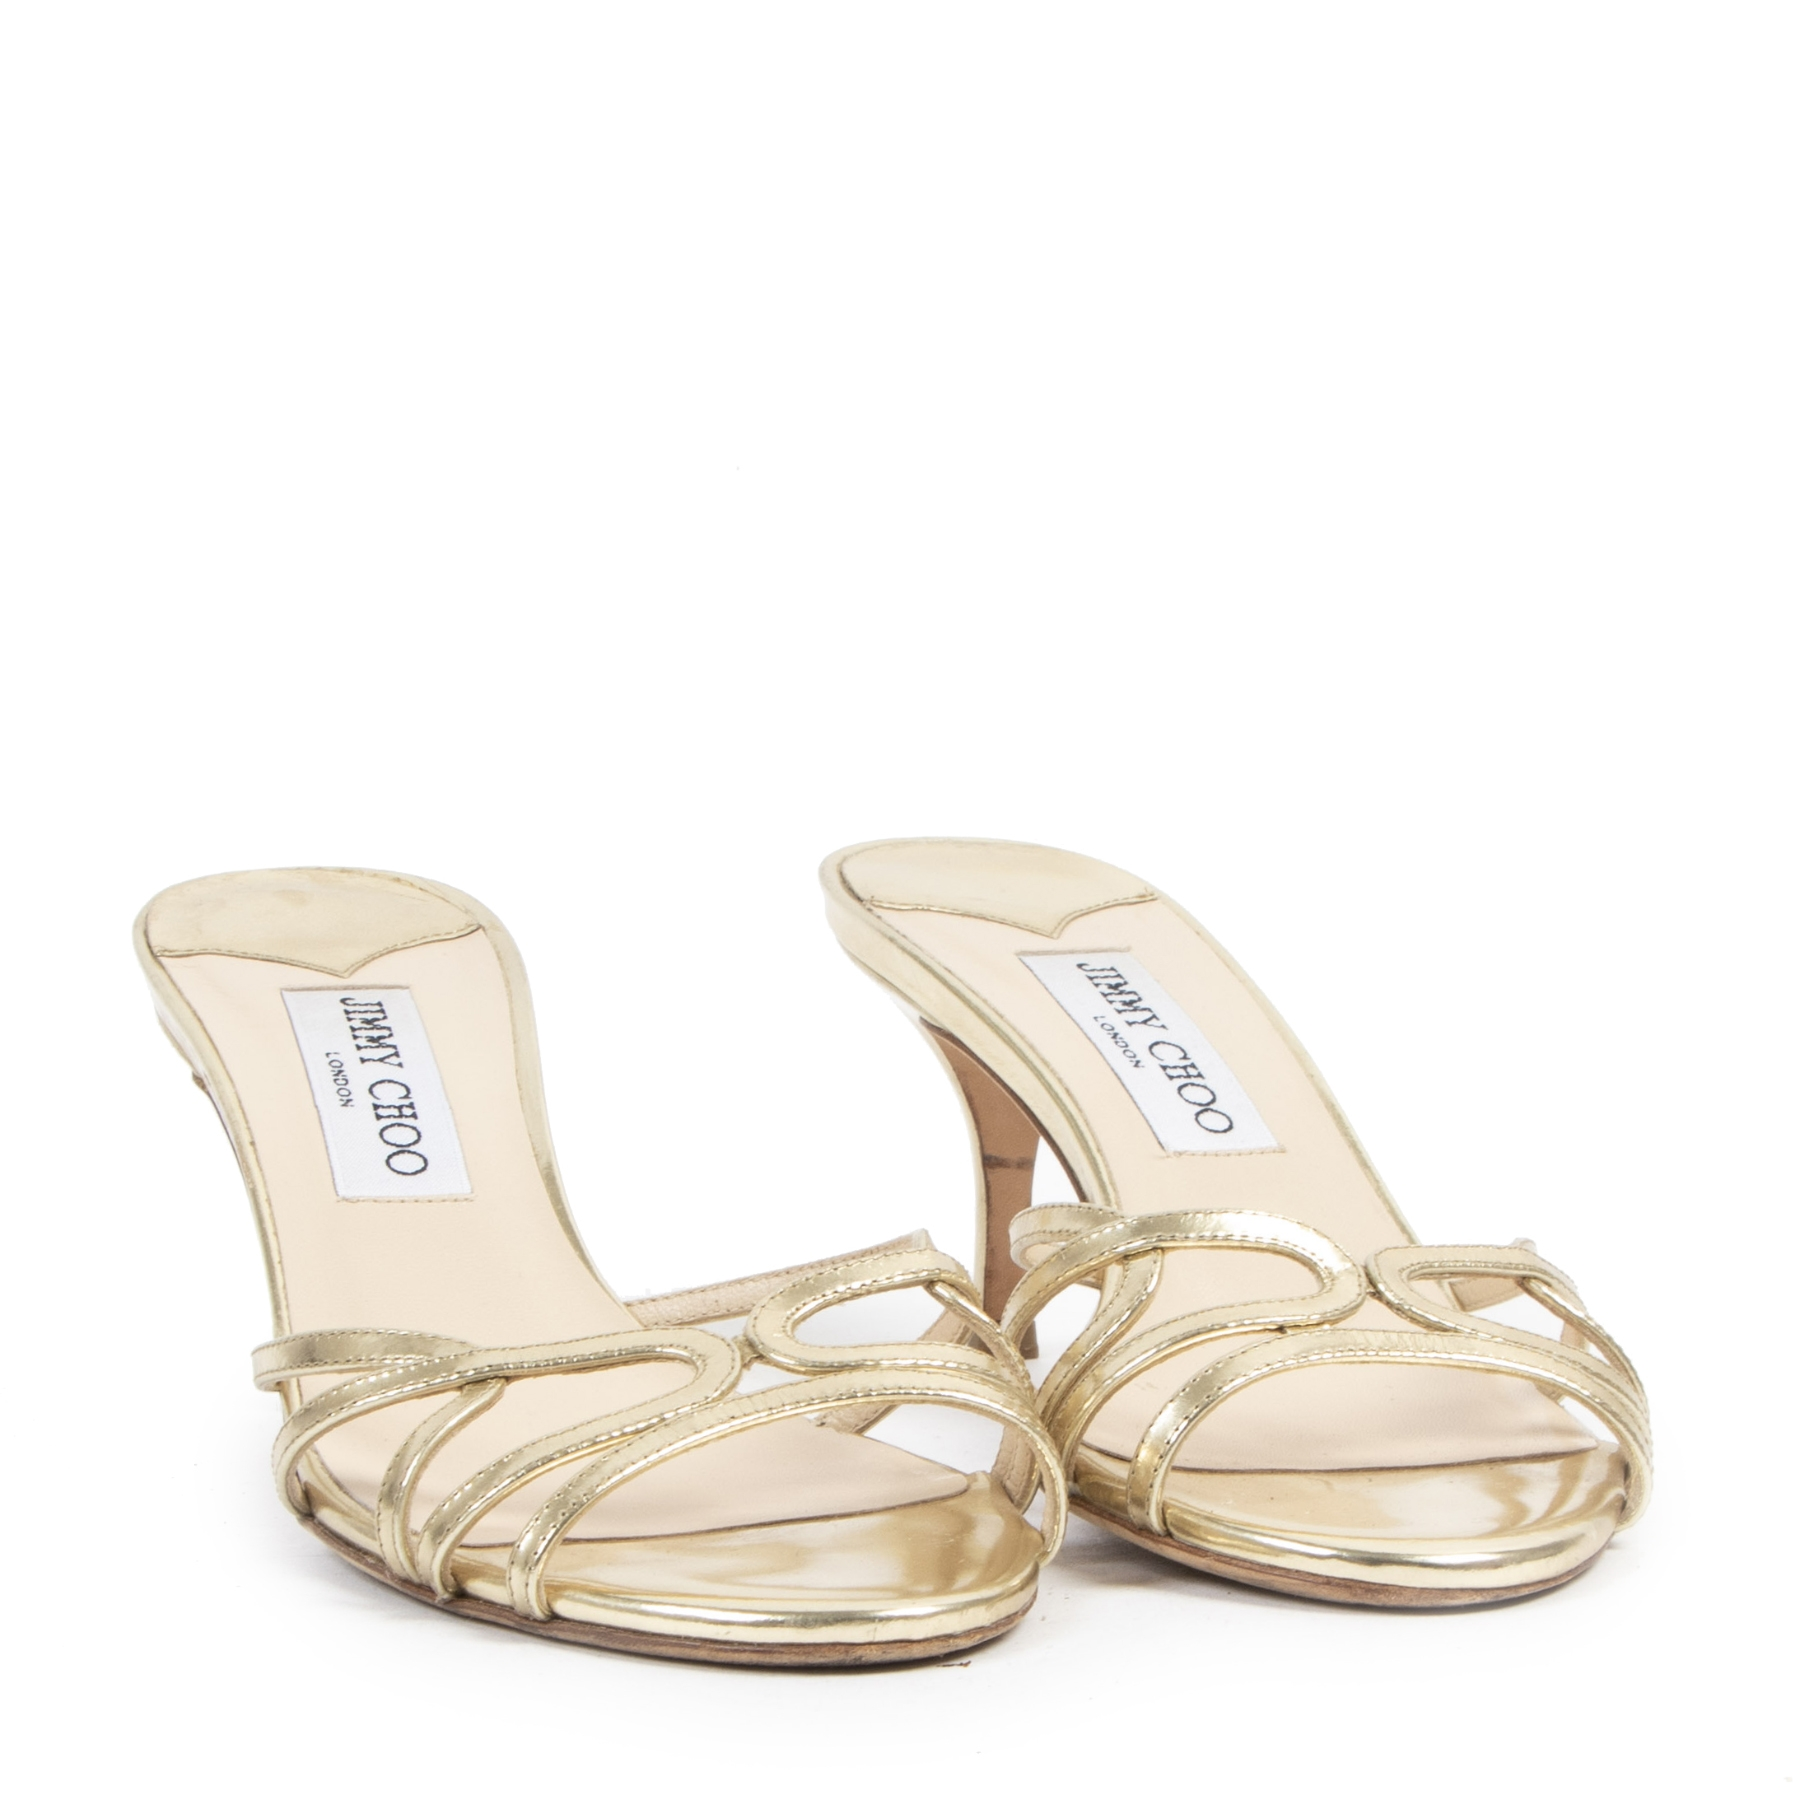 Authentic secondhand Jimmy Choo Gold Heeled Sandals - Size 37 designer shoes fashion luxury vintage webshop safe secure online shopping